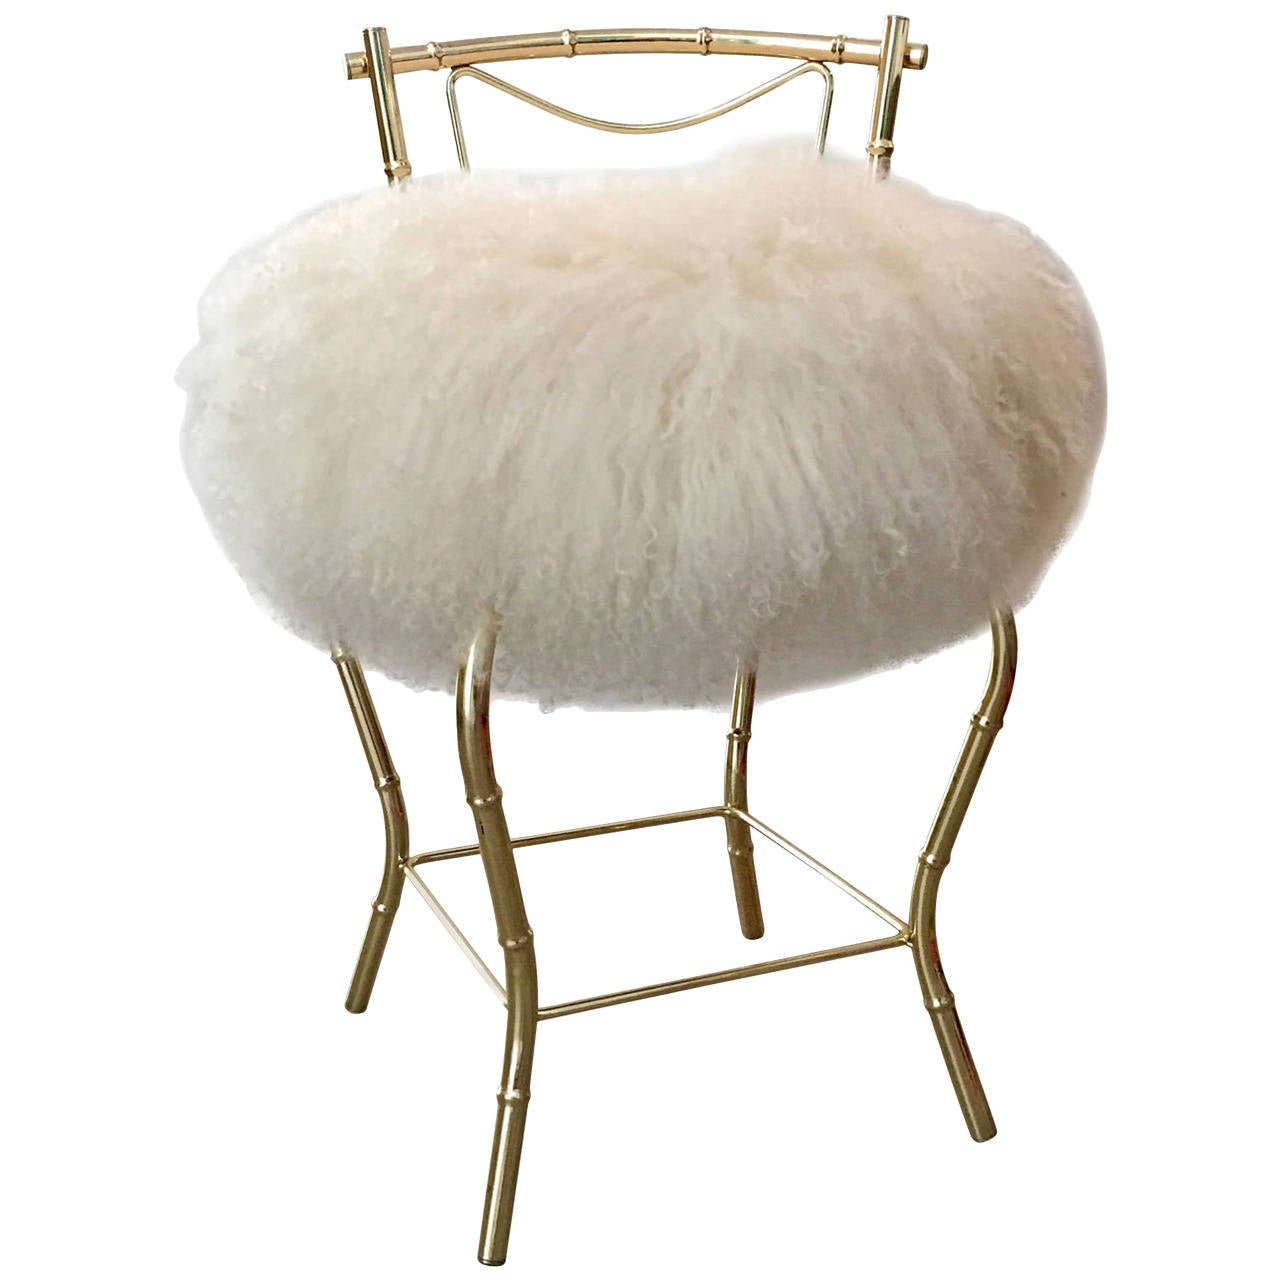 vanity chair. Vintage Mongolian Sheepskin and Brass Bamboo Style Vanity Stool 1 at